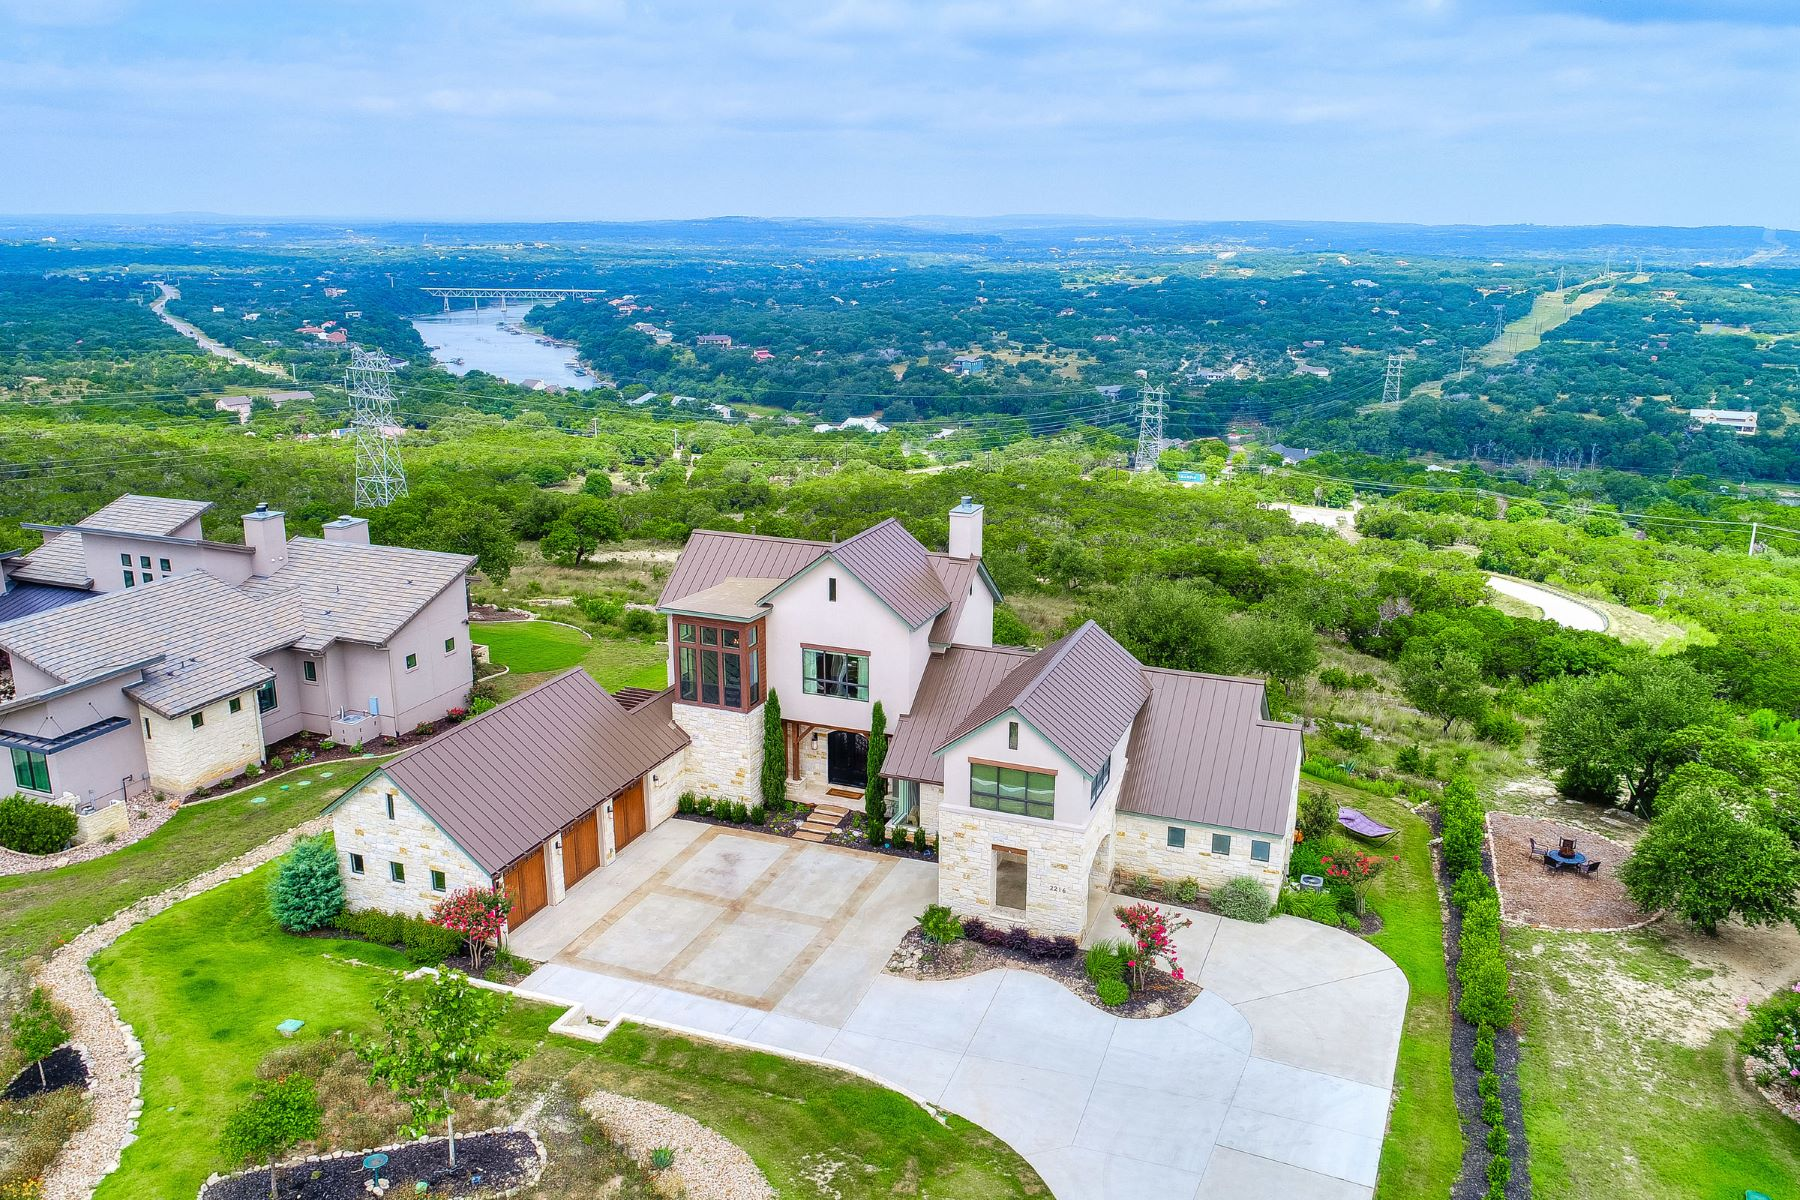 Single Family Homes for Active at 2216 Moonlight Trace, Spicewood, TX 78669 2216 Moonlight Trace Spicewood, Texas 78669 United States